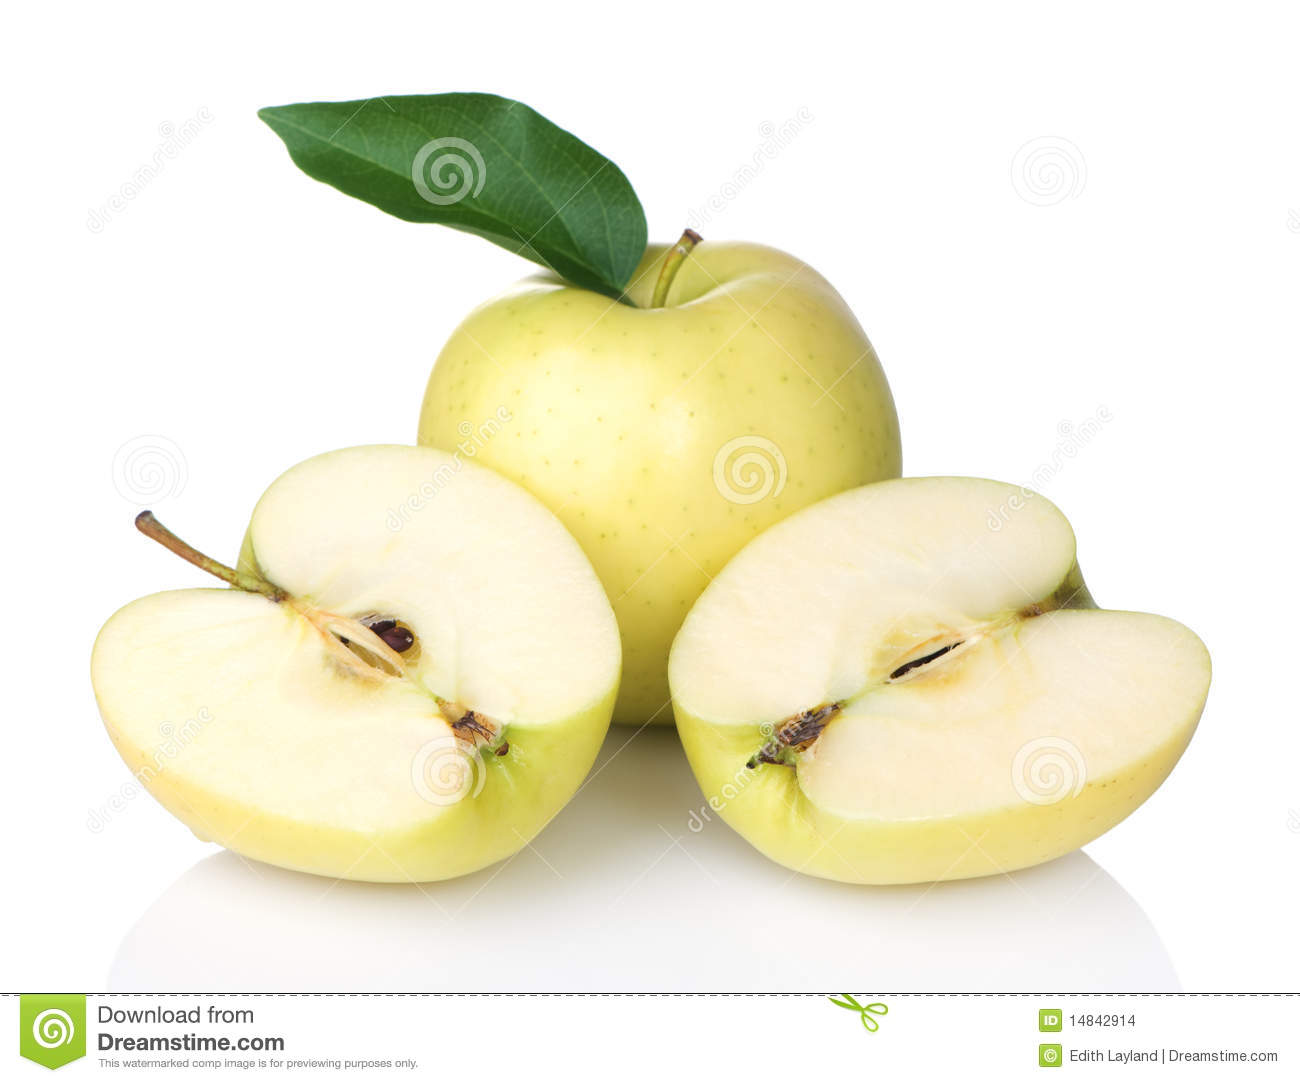 golden delicious apples with one sliced in half stock photo image of healthy fruit 14842914. Black Bedroom Furniture Sets. Home Design Ideas